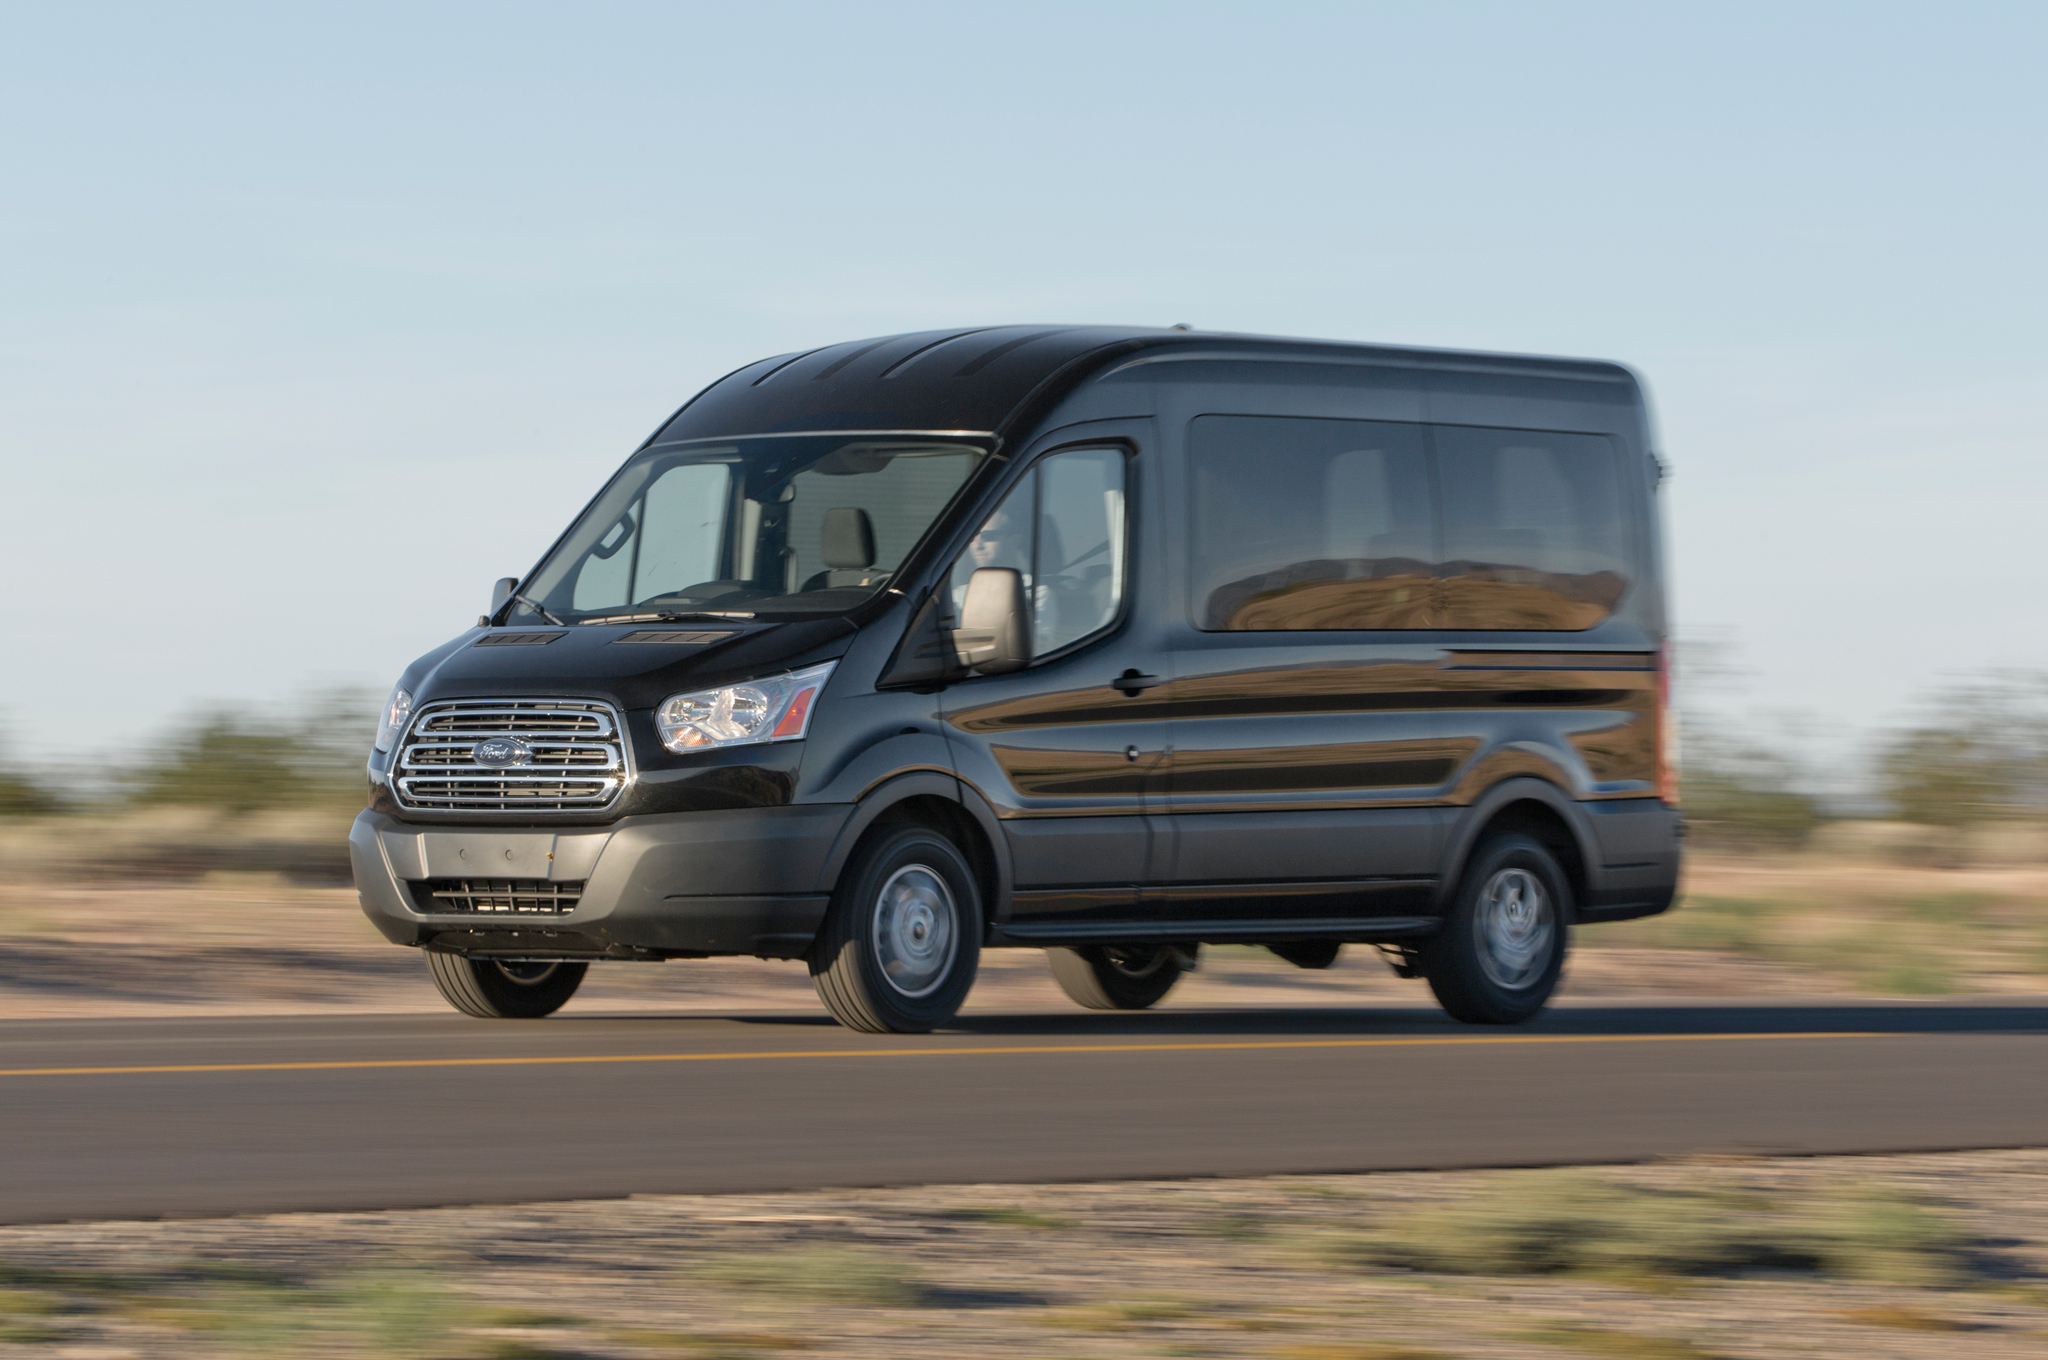 2015 Ford Transit 150 Exterior Overview (View 13 of 13)